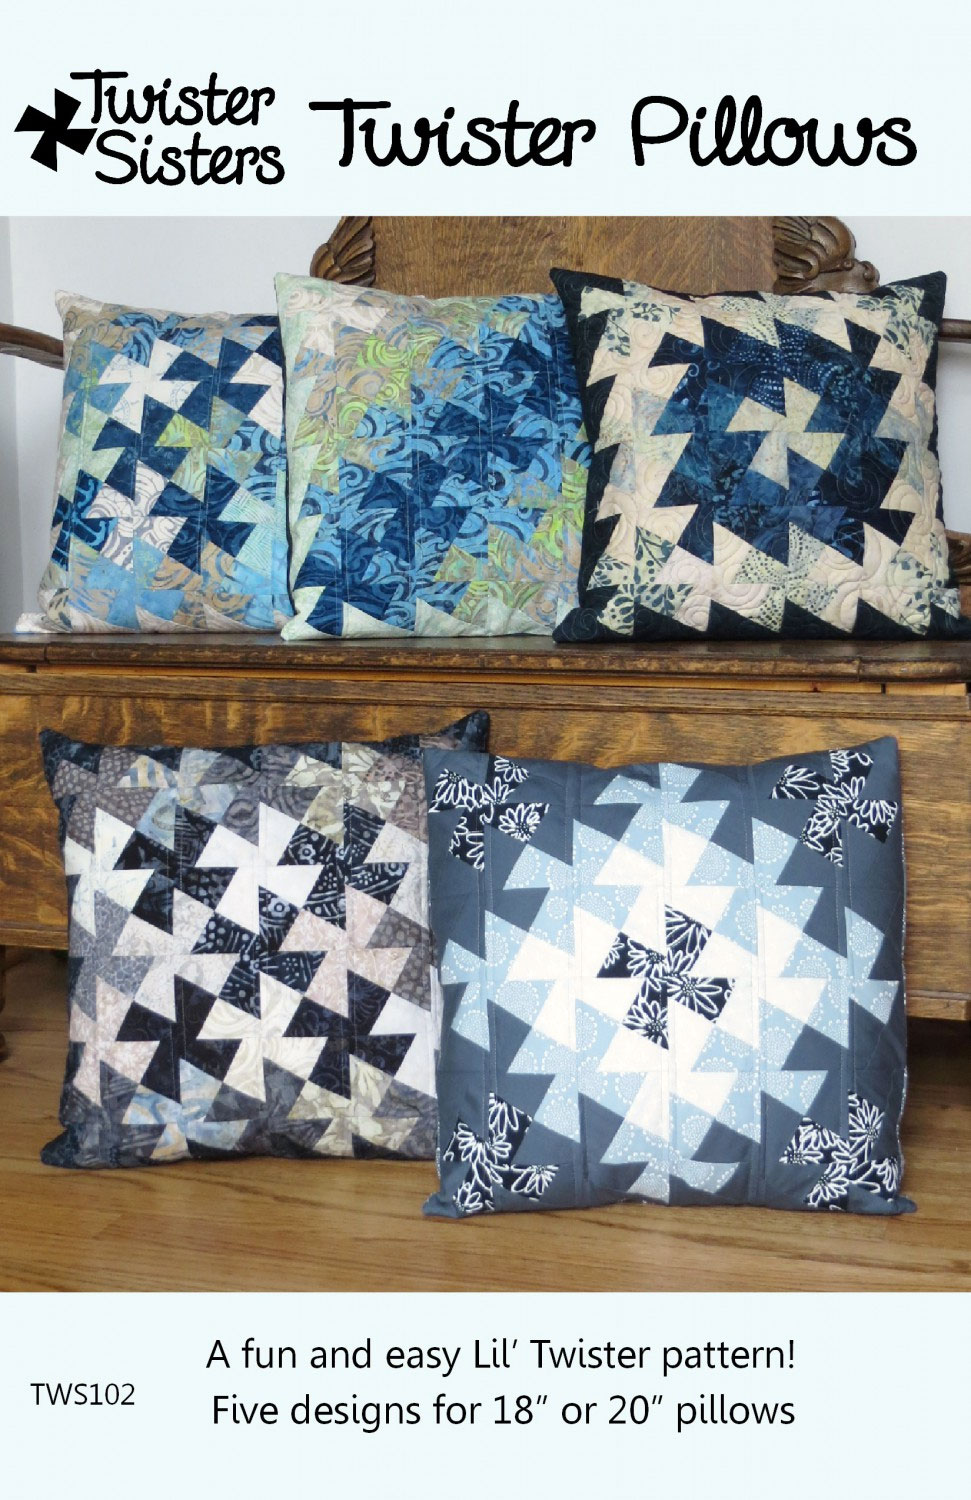 Twister-Pillows-sewing-pattern-Twister-Sisters-front